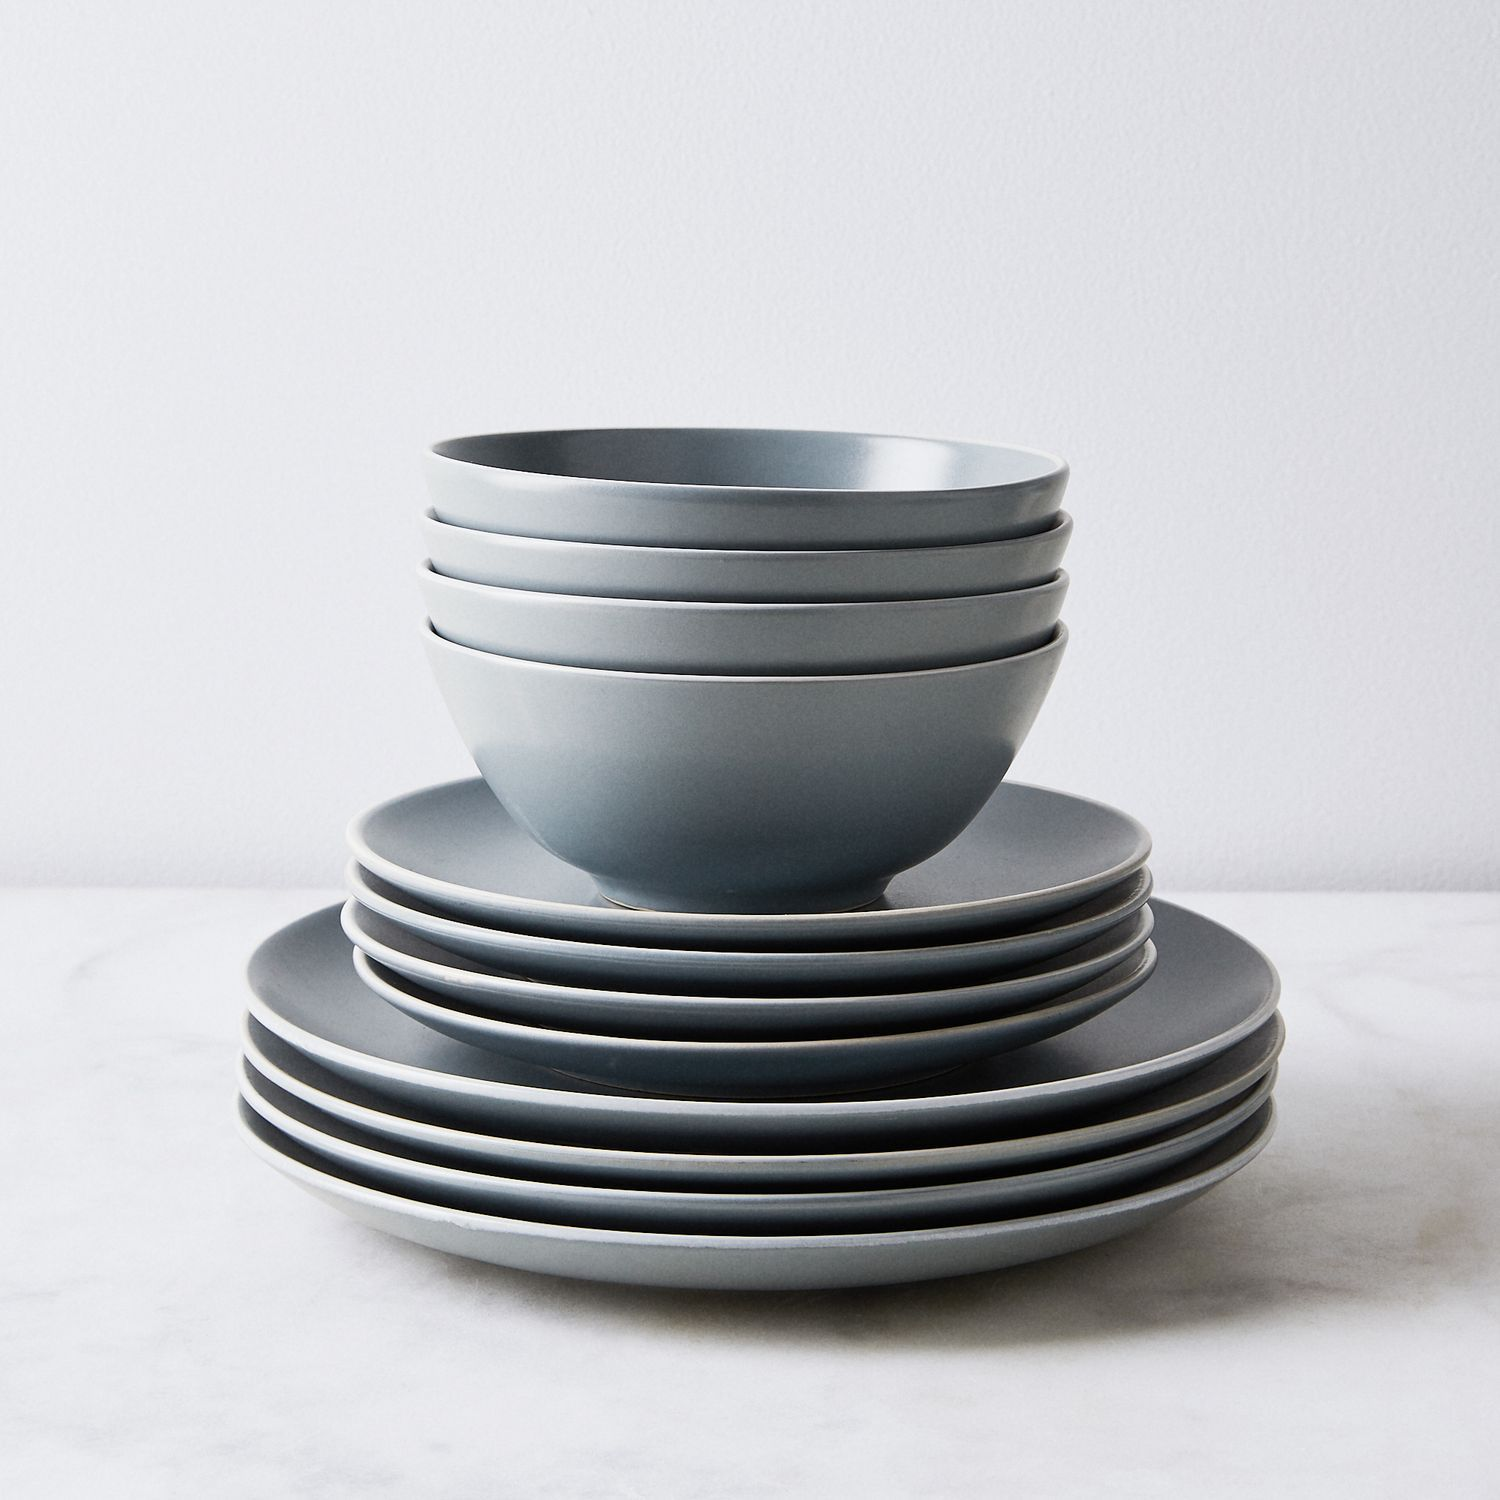 Classic Stoneware Dinnerware Best Affordable Dinnerware Set For Everyday Use In 2020 Stoneware Dinnerware Classic Dinnerware Dinnerware